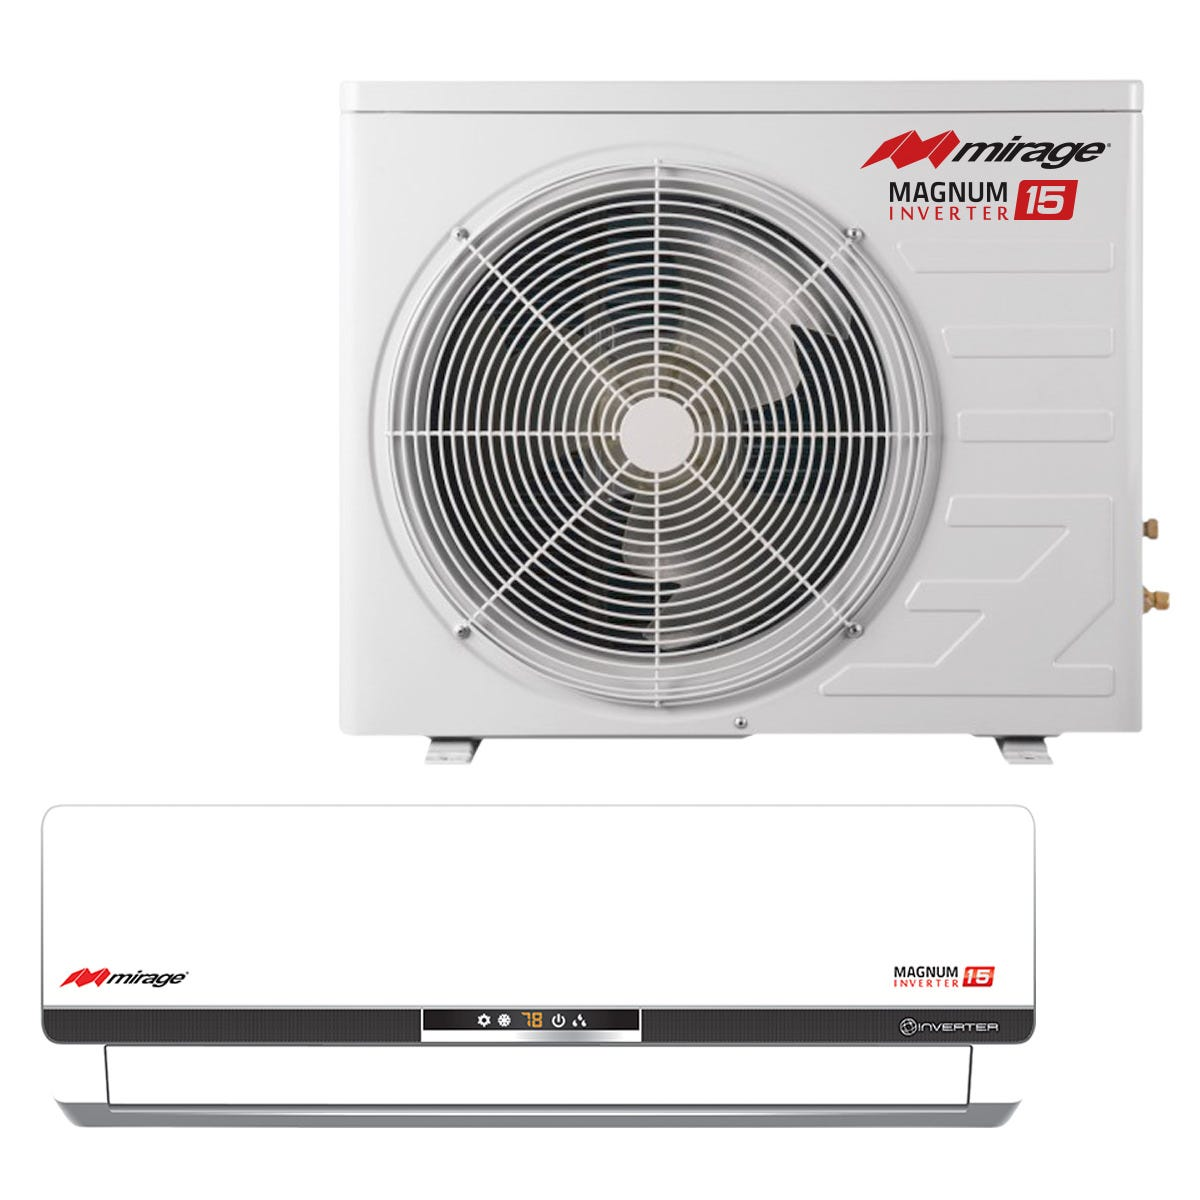 Mirage 15 SEER 12,000 BTU Mini Split Air Conditioner The Mirage Magnum 15 SEER represents the state-of-the-art in split air conditioner systems. These units have proven themselves throughout Europe, Africa, Australia, Asia and the Middle East for many years, and now we're proud to offer them to you. They offer many features that make them exceedingly well-suited for horticultural climate control. These Mirage Magnum 15 SEER units having heating and cooling functions. The Magnum 15's inverter technology ensures lower operation costs, longer compressor life, and more effective room cooling than A/C systems of comparable price and capacity. The speed of its unique inverter compressor (double that of a conventional compressor), provides a much faster transition to your desired room temperature. The Magnum 15 also features a special hydrophobic coating on the coils which prevents fungal and calcium buildup, as well as rifled copper coil lines which bring superior cooling efficiency. Consider the additional features such as automatic speed, multiface coil technology for more efficient heat exchange, internal monitoring system, remote control, an efficiency rating of 15 SEER (Season Energy Efficiency Ratio), and up to 40% savings on electricity costs over legacy A/C systems of comparable BTU specs, and it's easy to see why Mirage quality is no illusion! Mirage Mini Split Air Conditioner: 1 year warranty on parts / 5 year compressor (void if not installed by HVAC professional) Use alone on a 15A circuit breaker Outdoor unit ambient temperature operating range: 10 F to 115 F 12, 18 & 24 BTU Mirage Split A/Cs have cooling and heating capability Includes 25' lineset Cooling temperature range: 5°F to 115°F Heating temperature range: -2°F to 75°F.